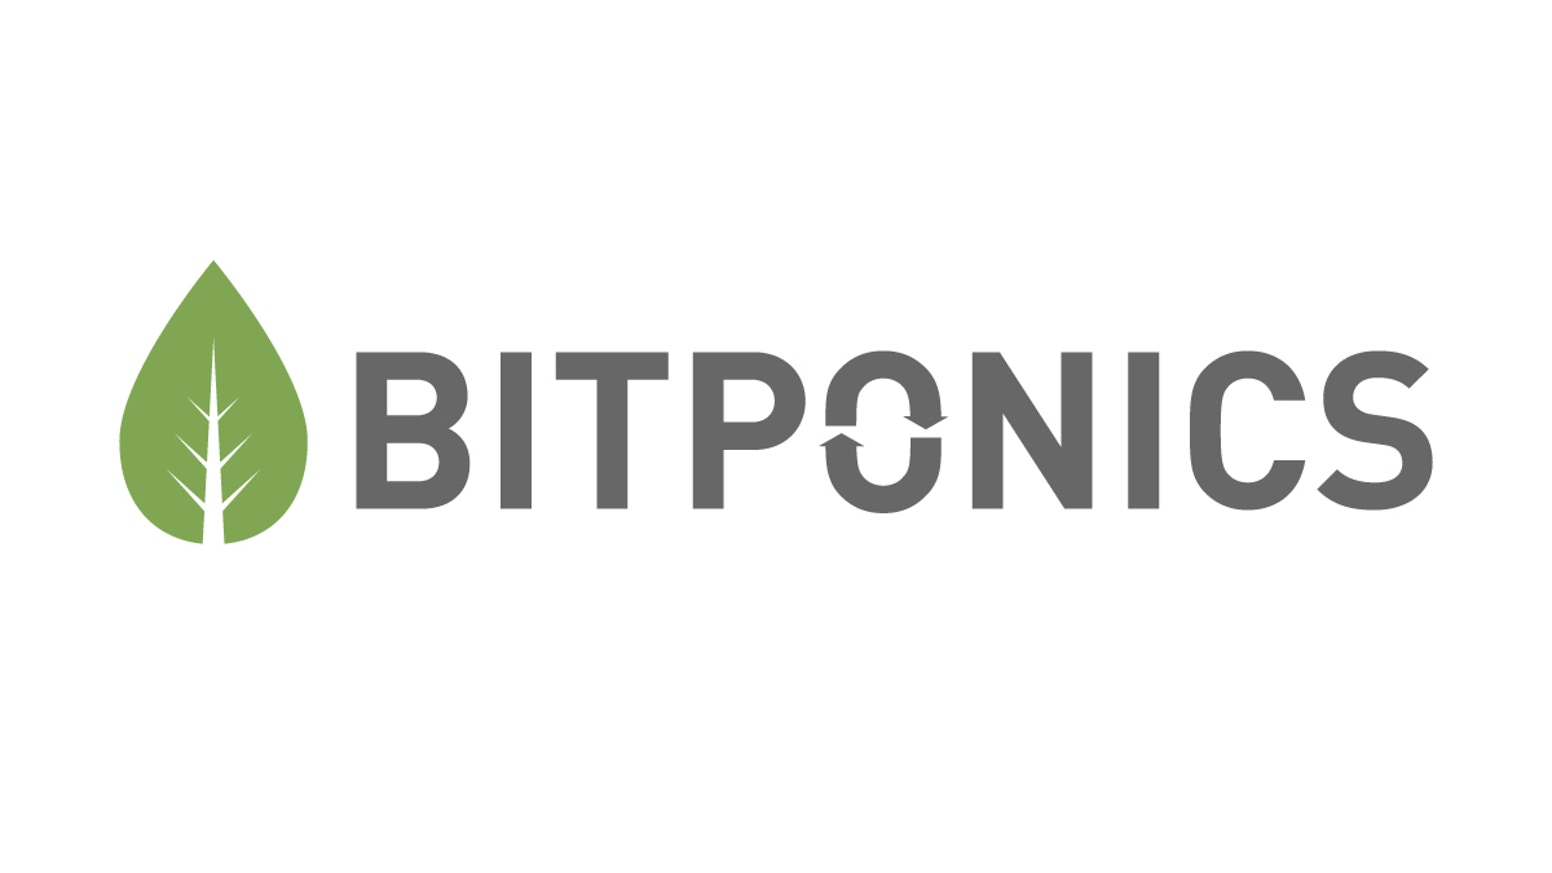 Ever have trouble growing plants? We can help. Bitponics is your automated gardening assistant, guiding you every step of the way. Visit us at http://www.bitponics.com